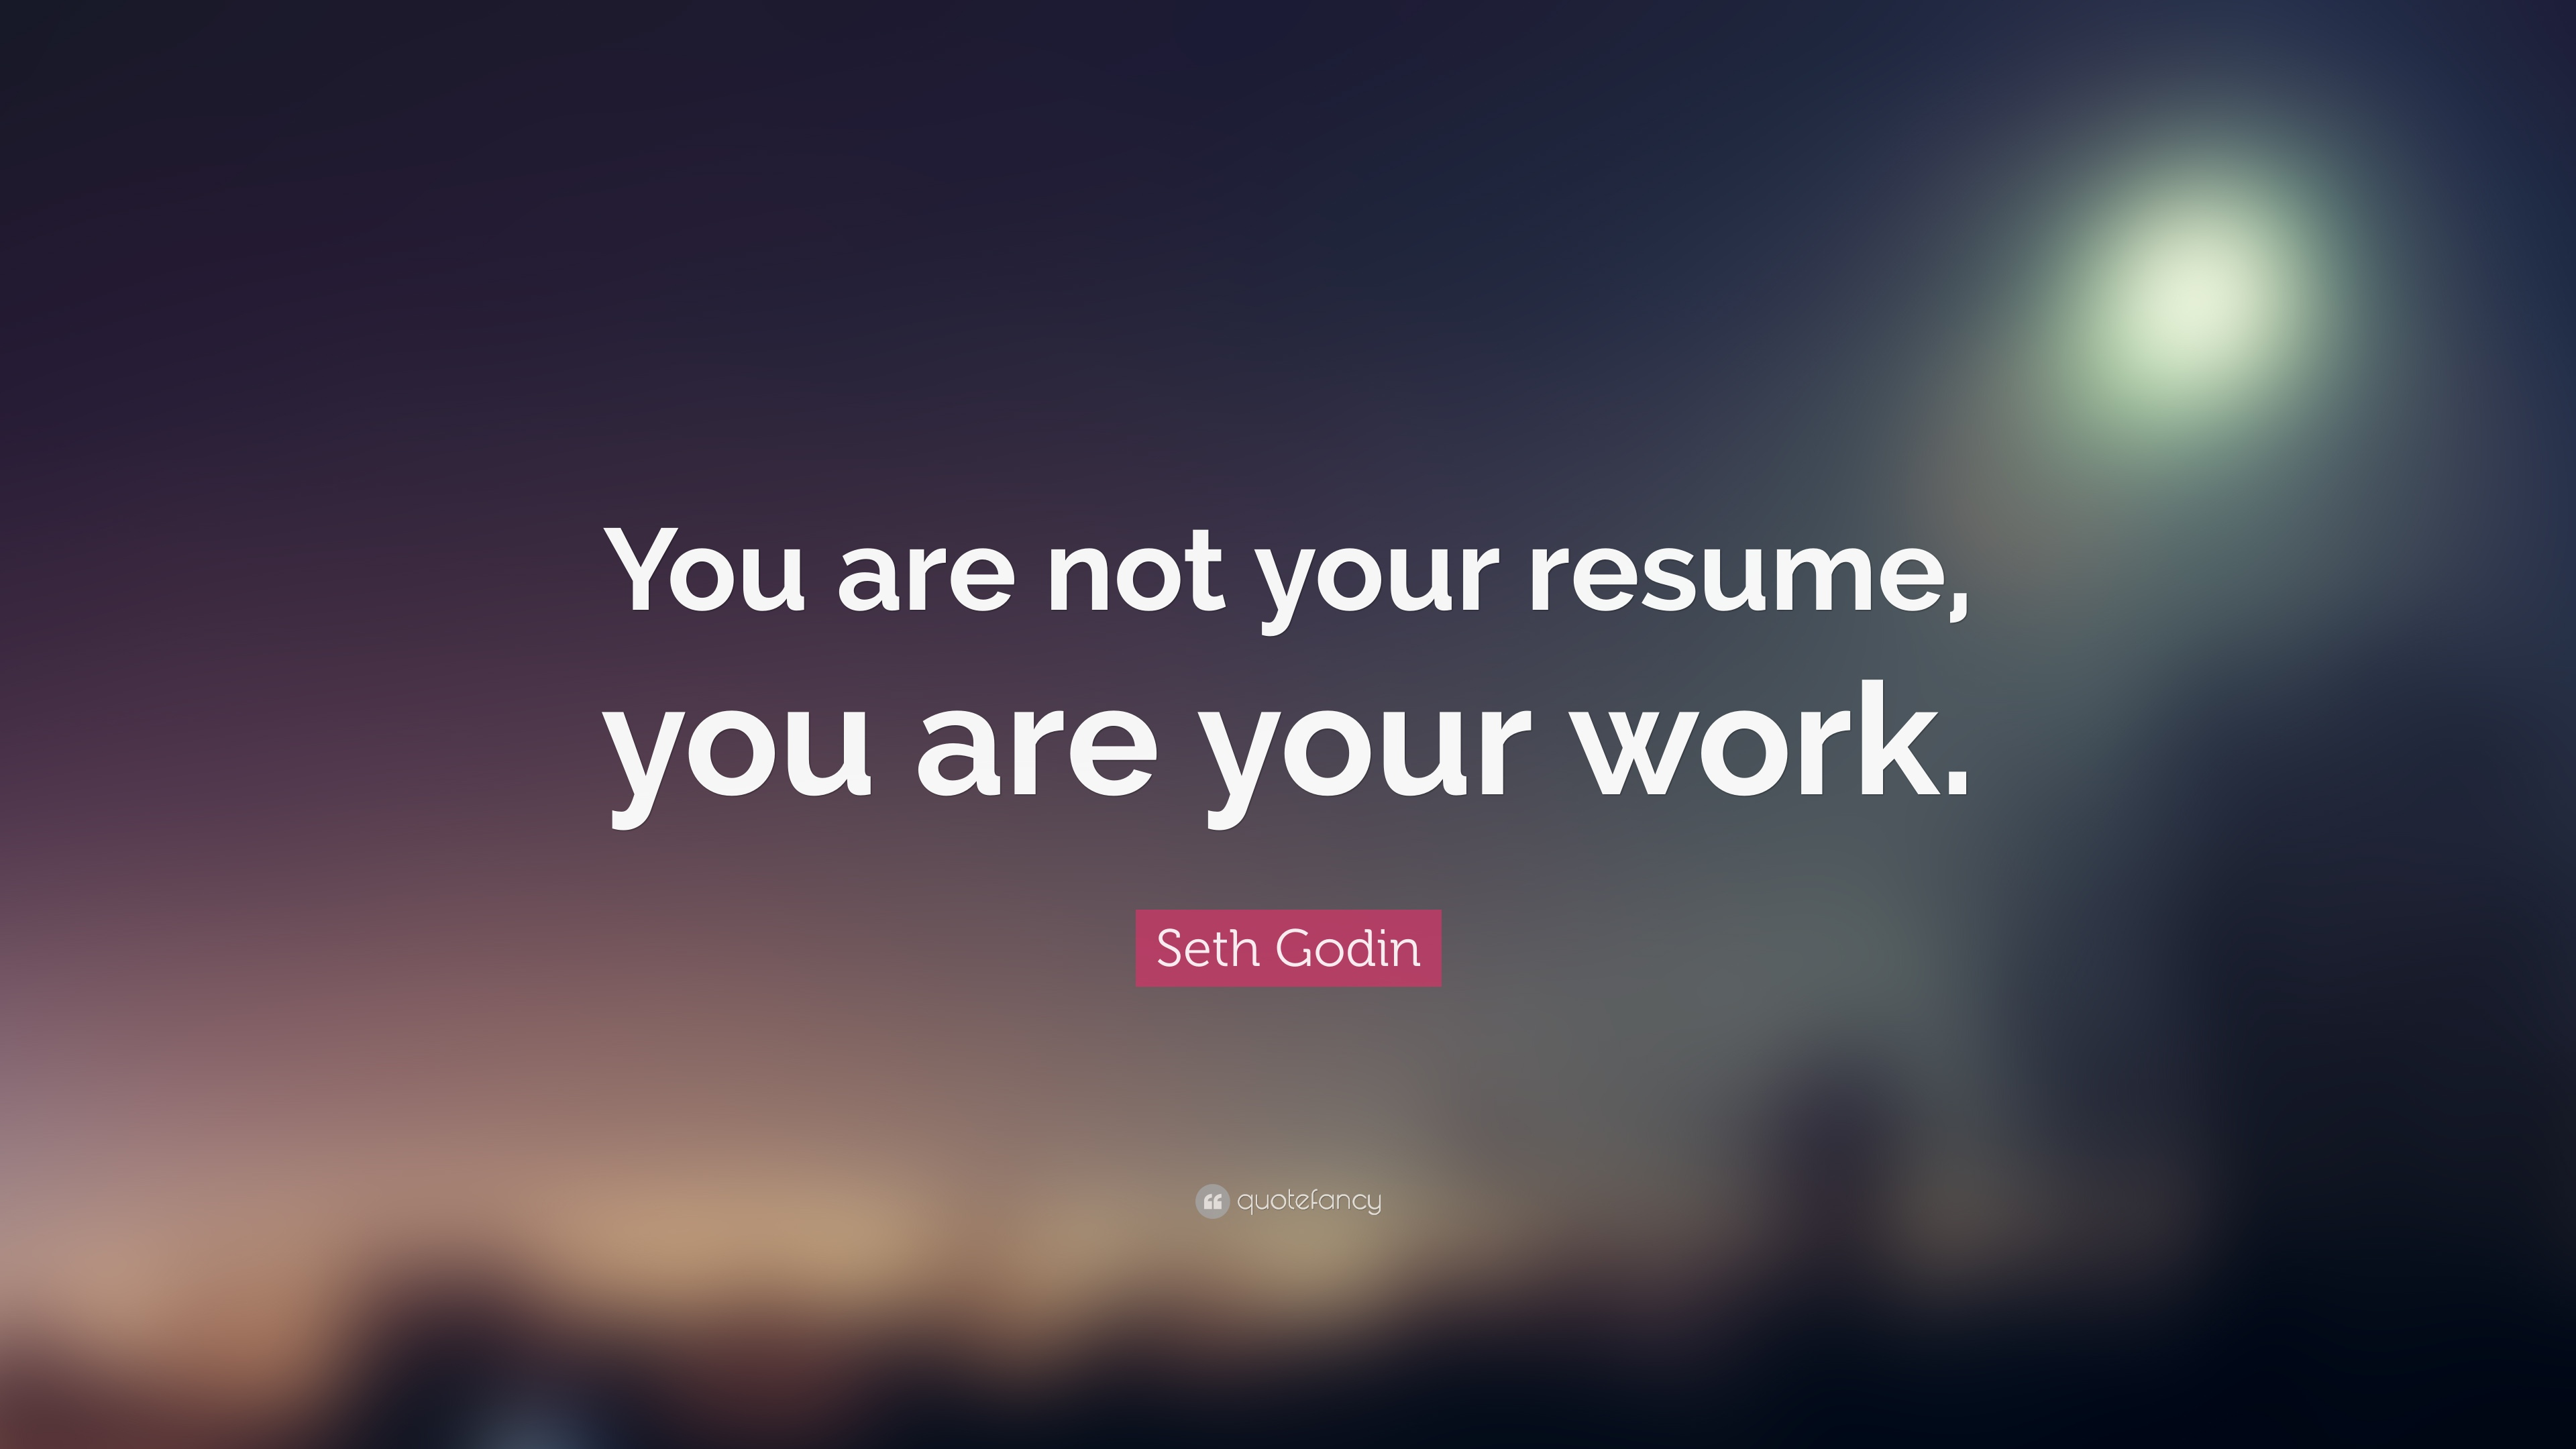 seth godin quote   u201cyou are not your resume  you are your